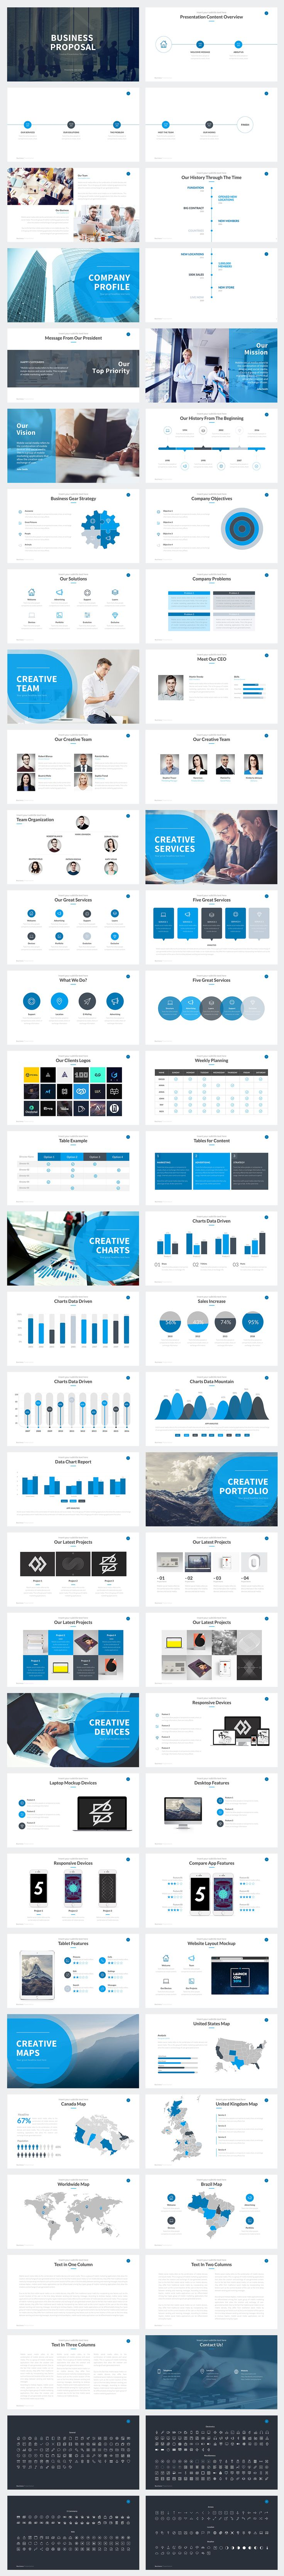 Business Proposal PowerPoint - Presentations - 9